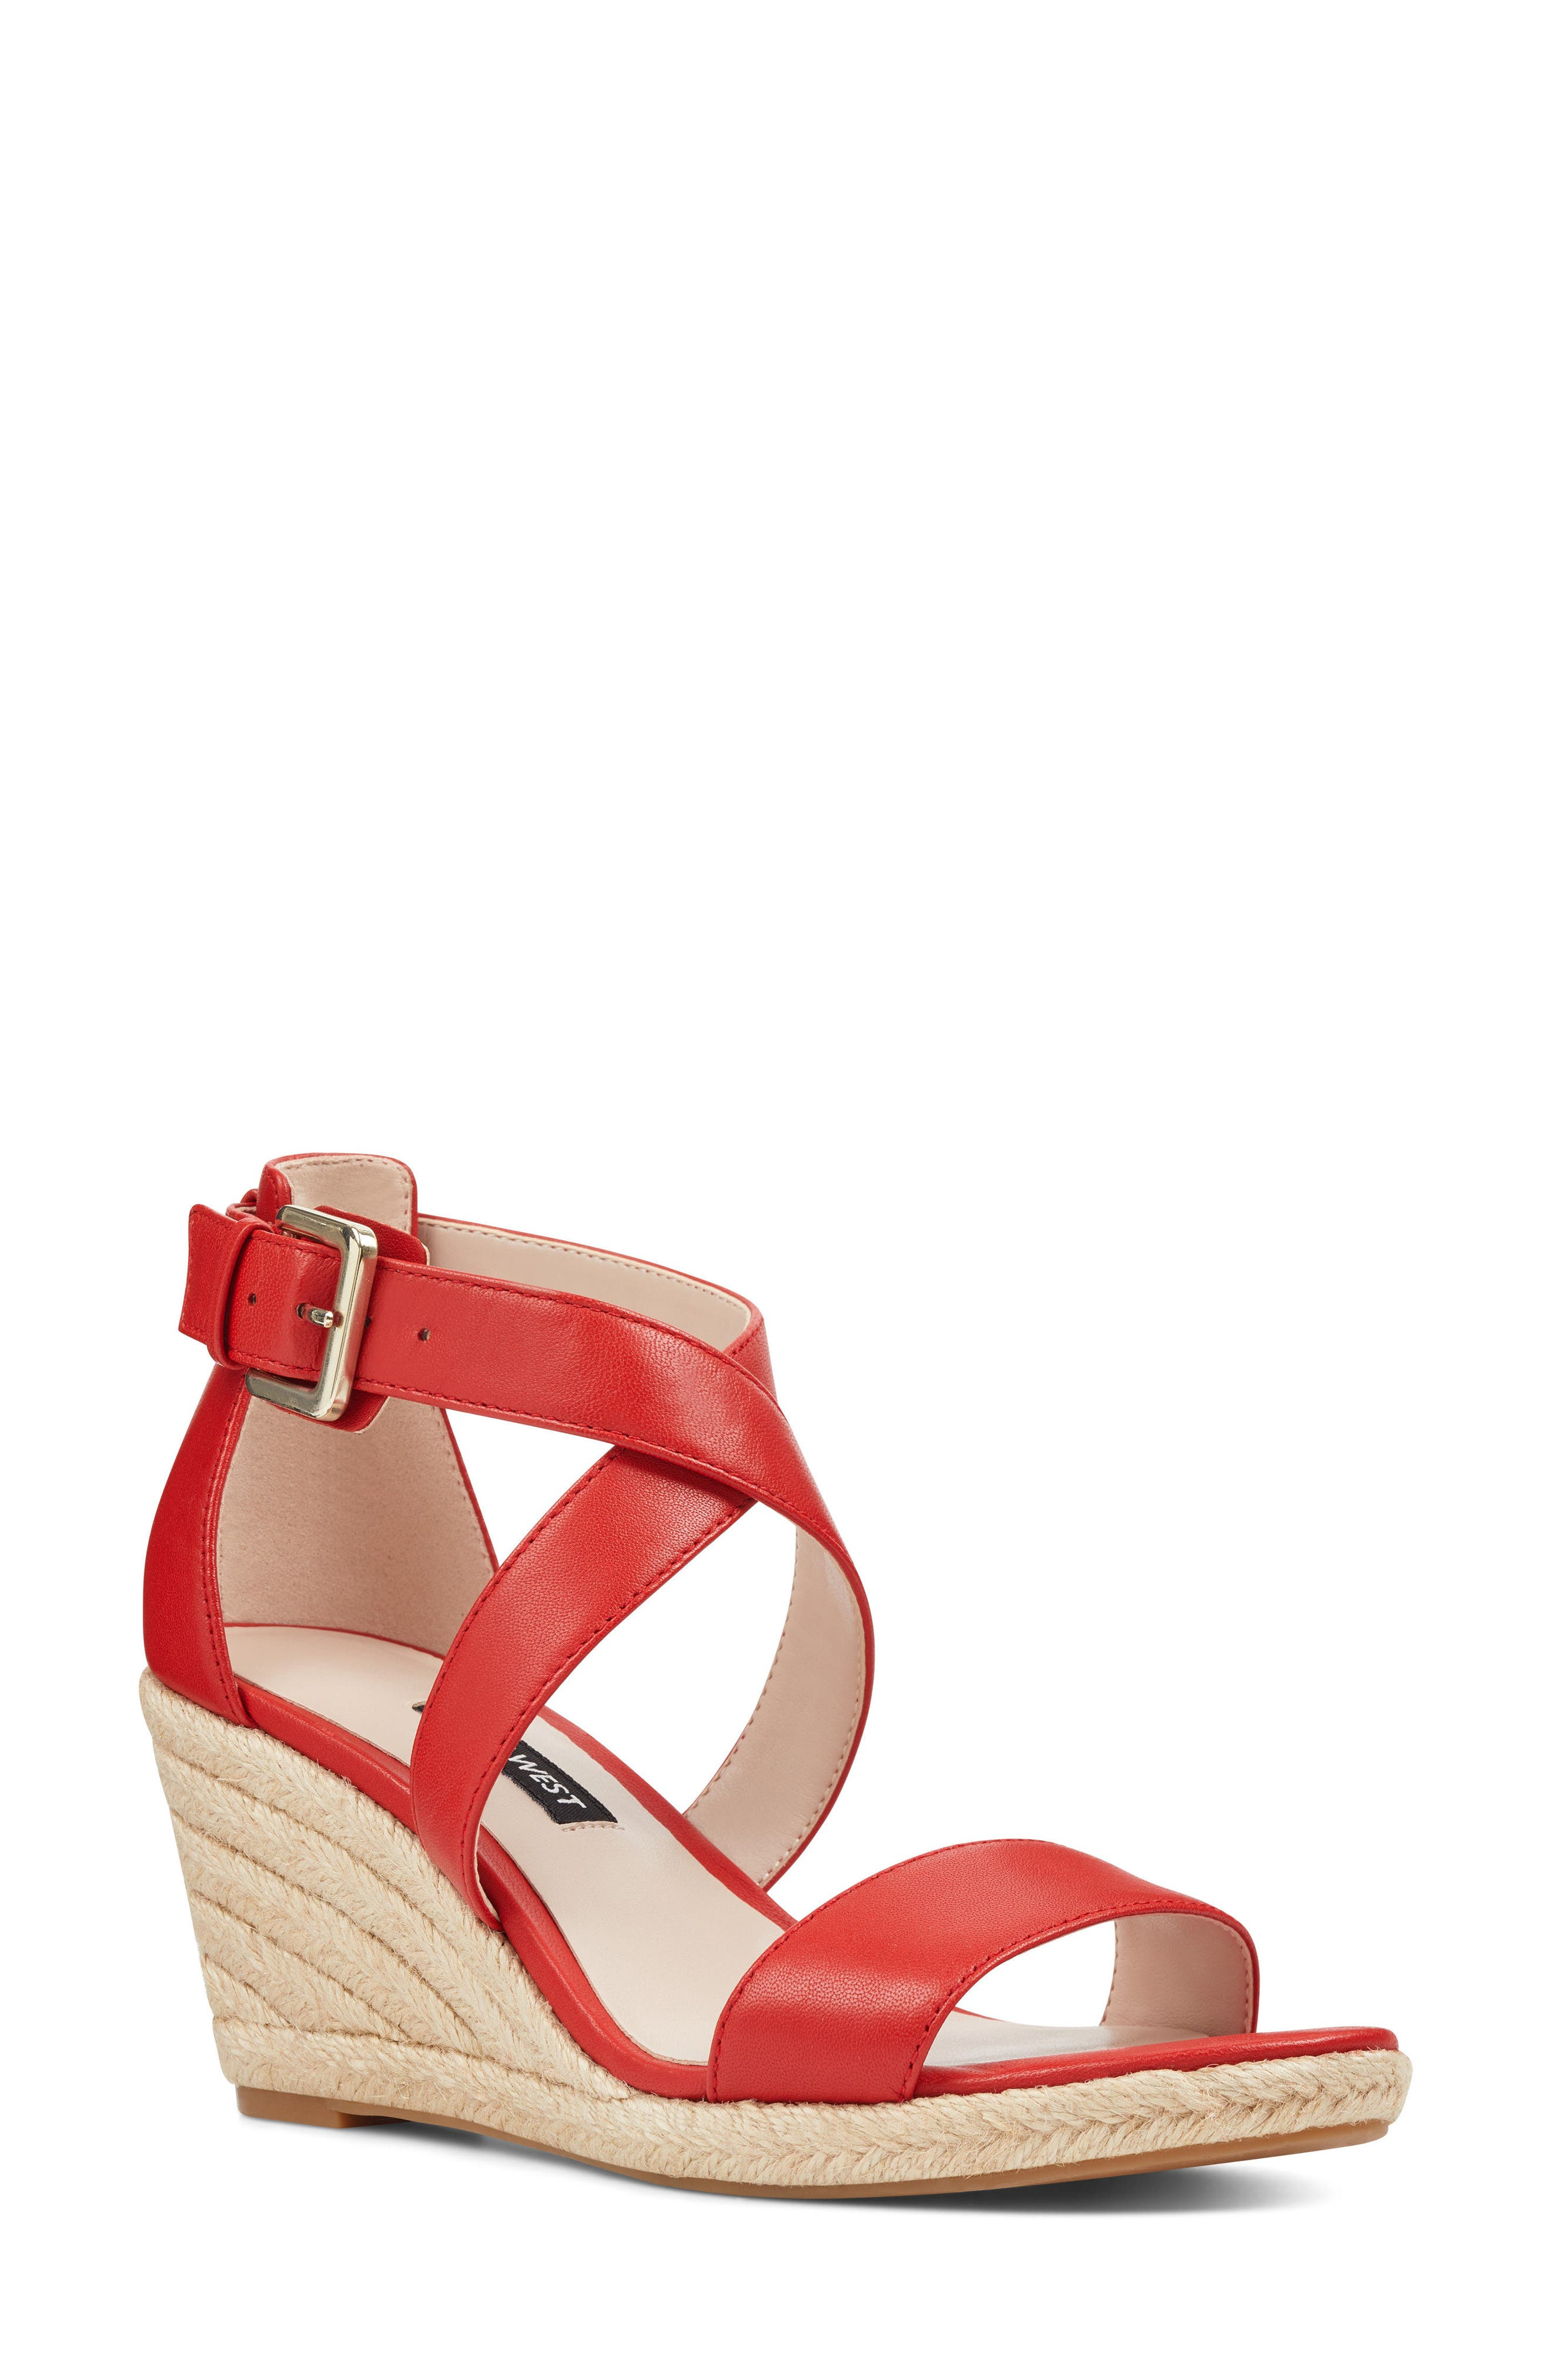 Jorjapeach Espadrille Wedge Sandal,                             Main thumbnail 1, color,                             RED LEATHER